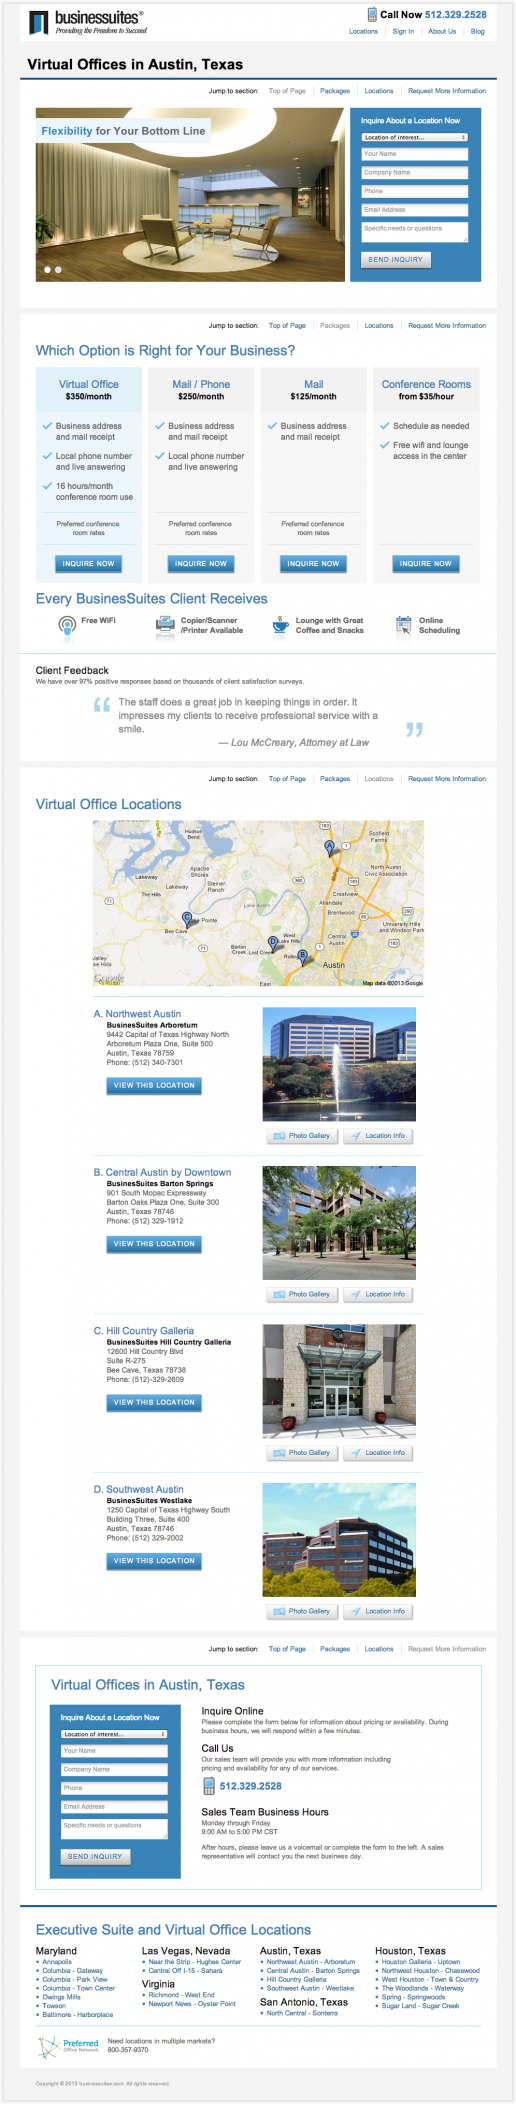 BusinesSuites Virtual Offices Page – version 1